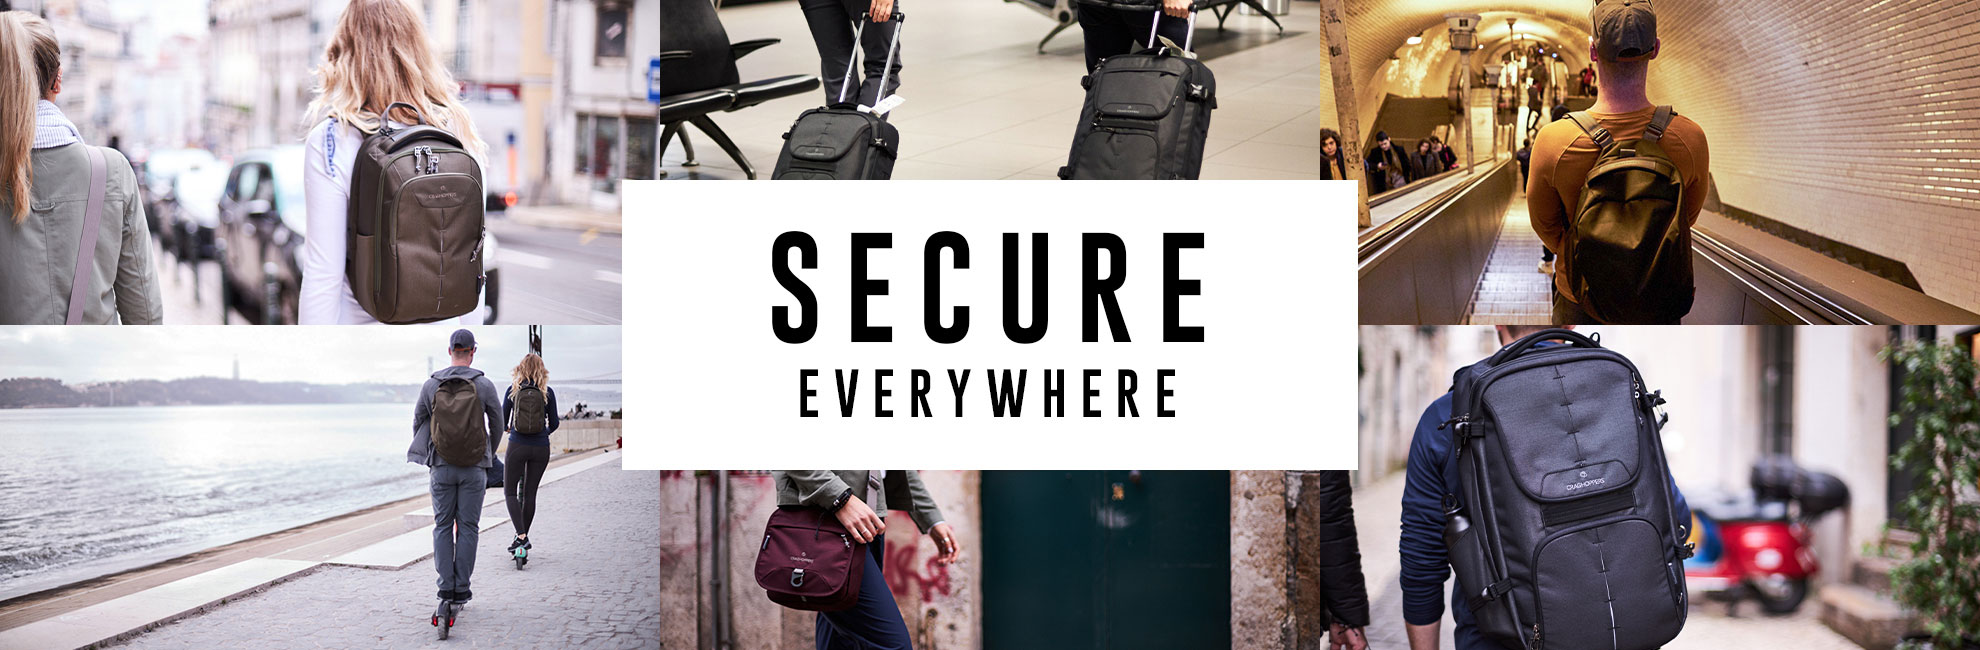 Secure Everywhere